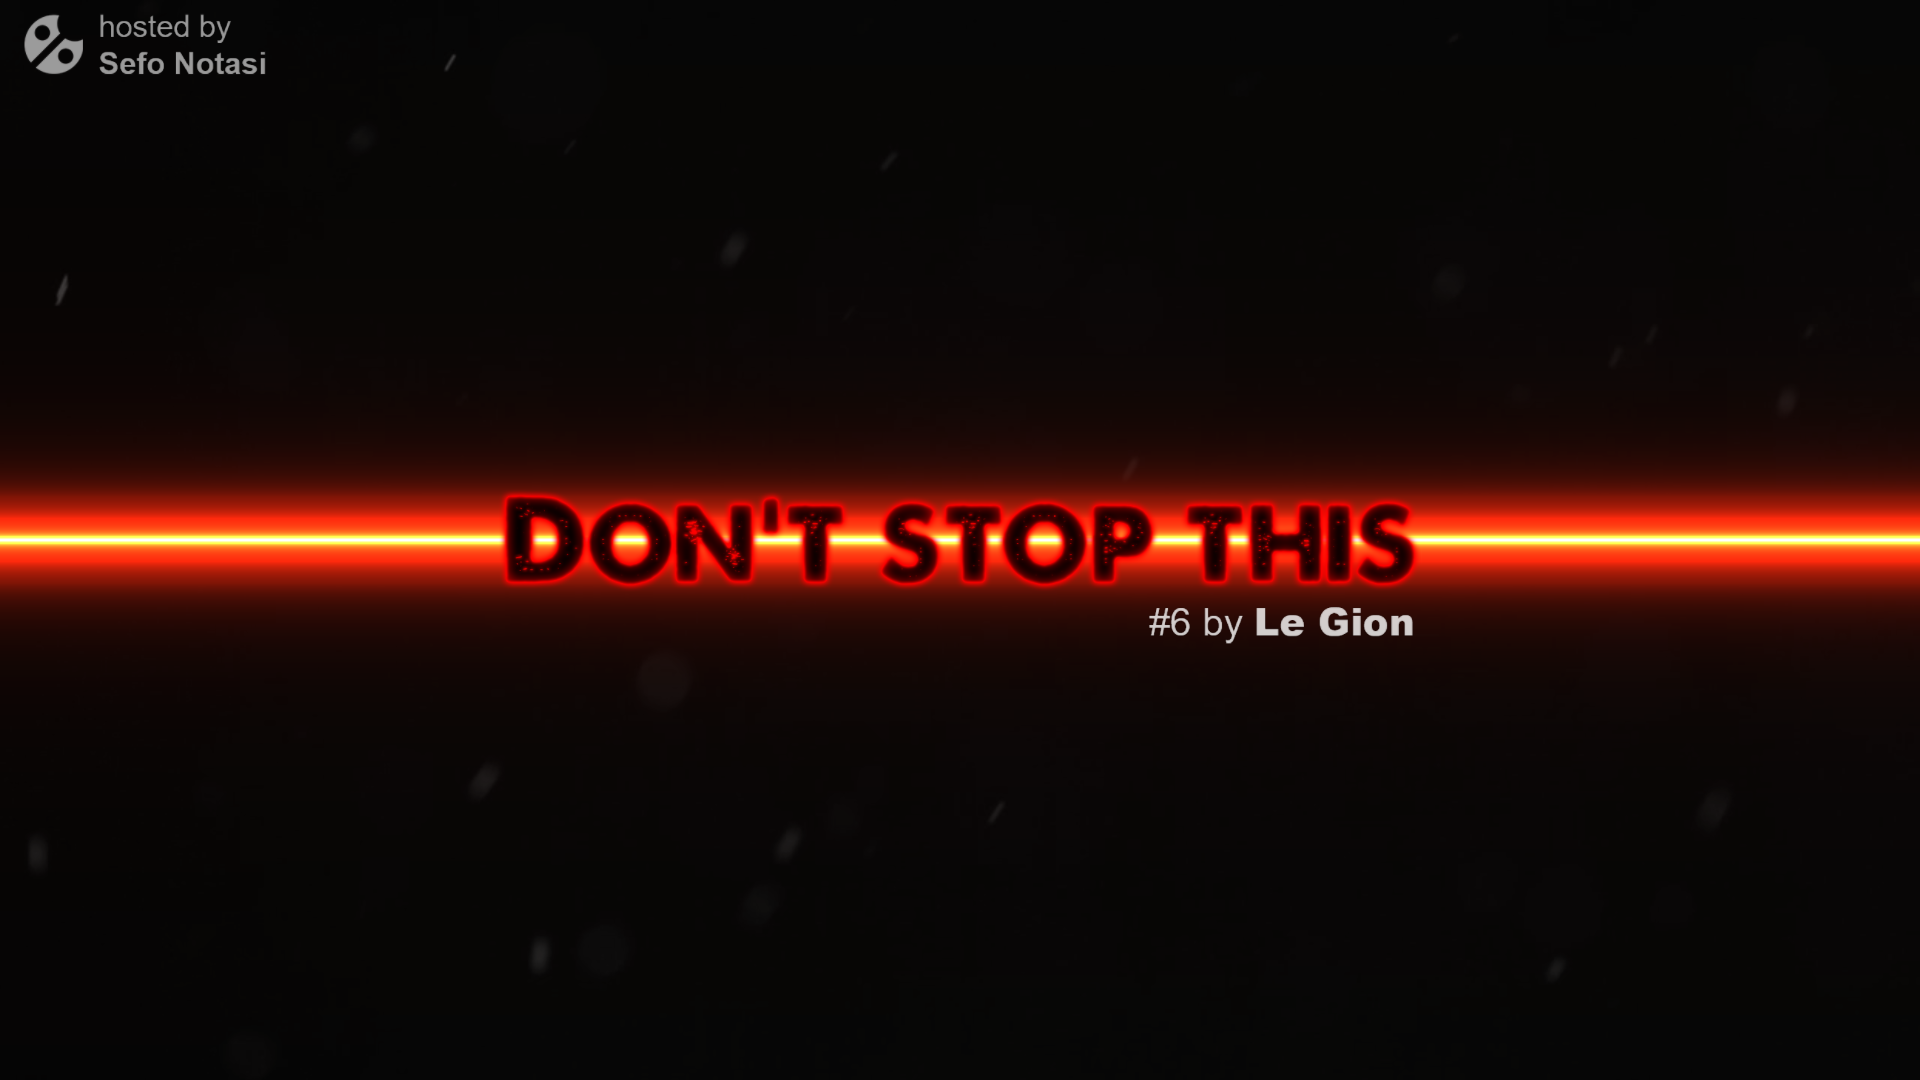 Don't stop this 2